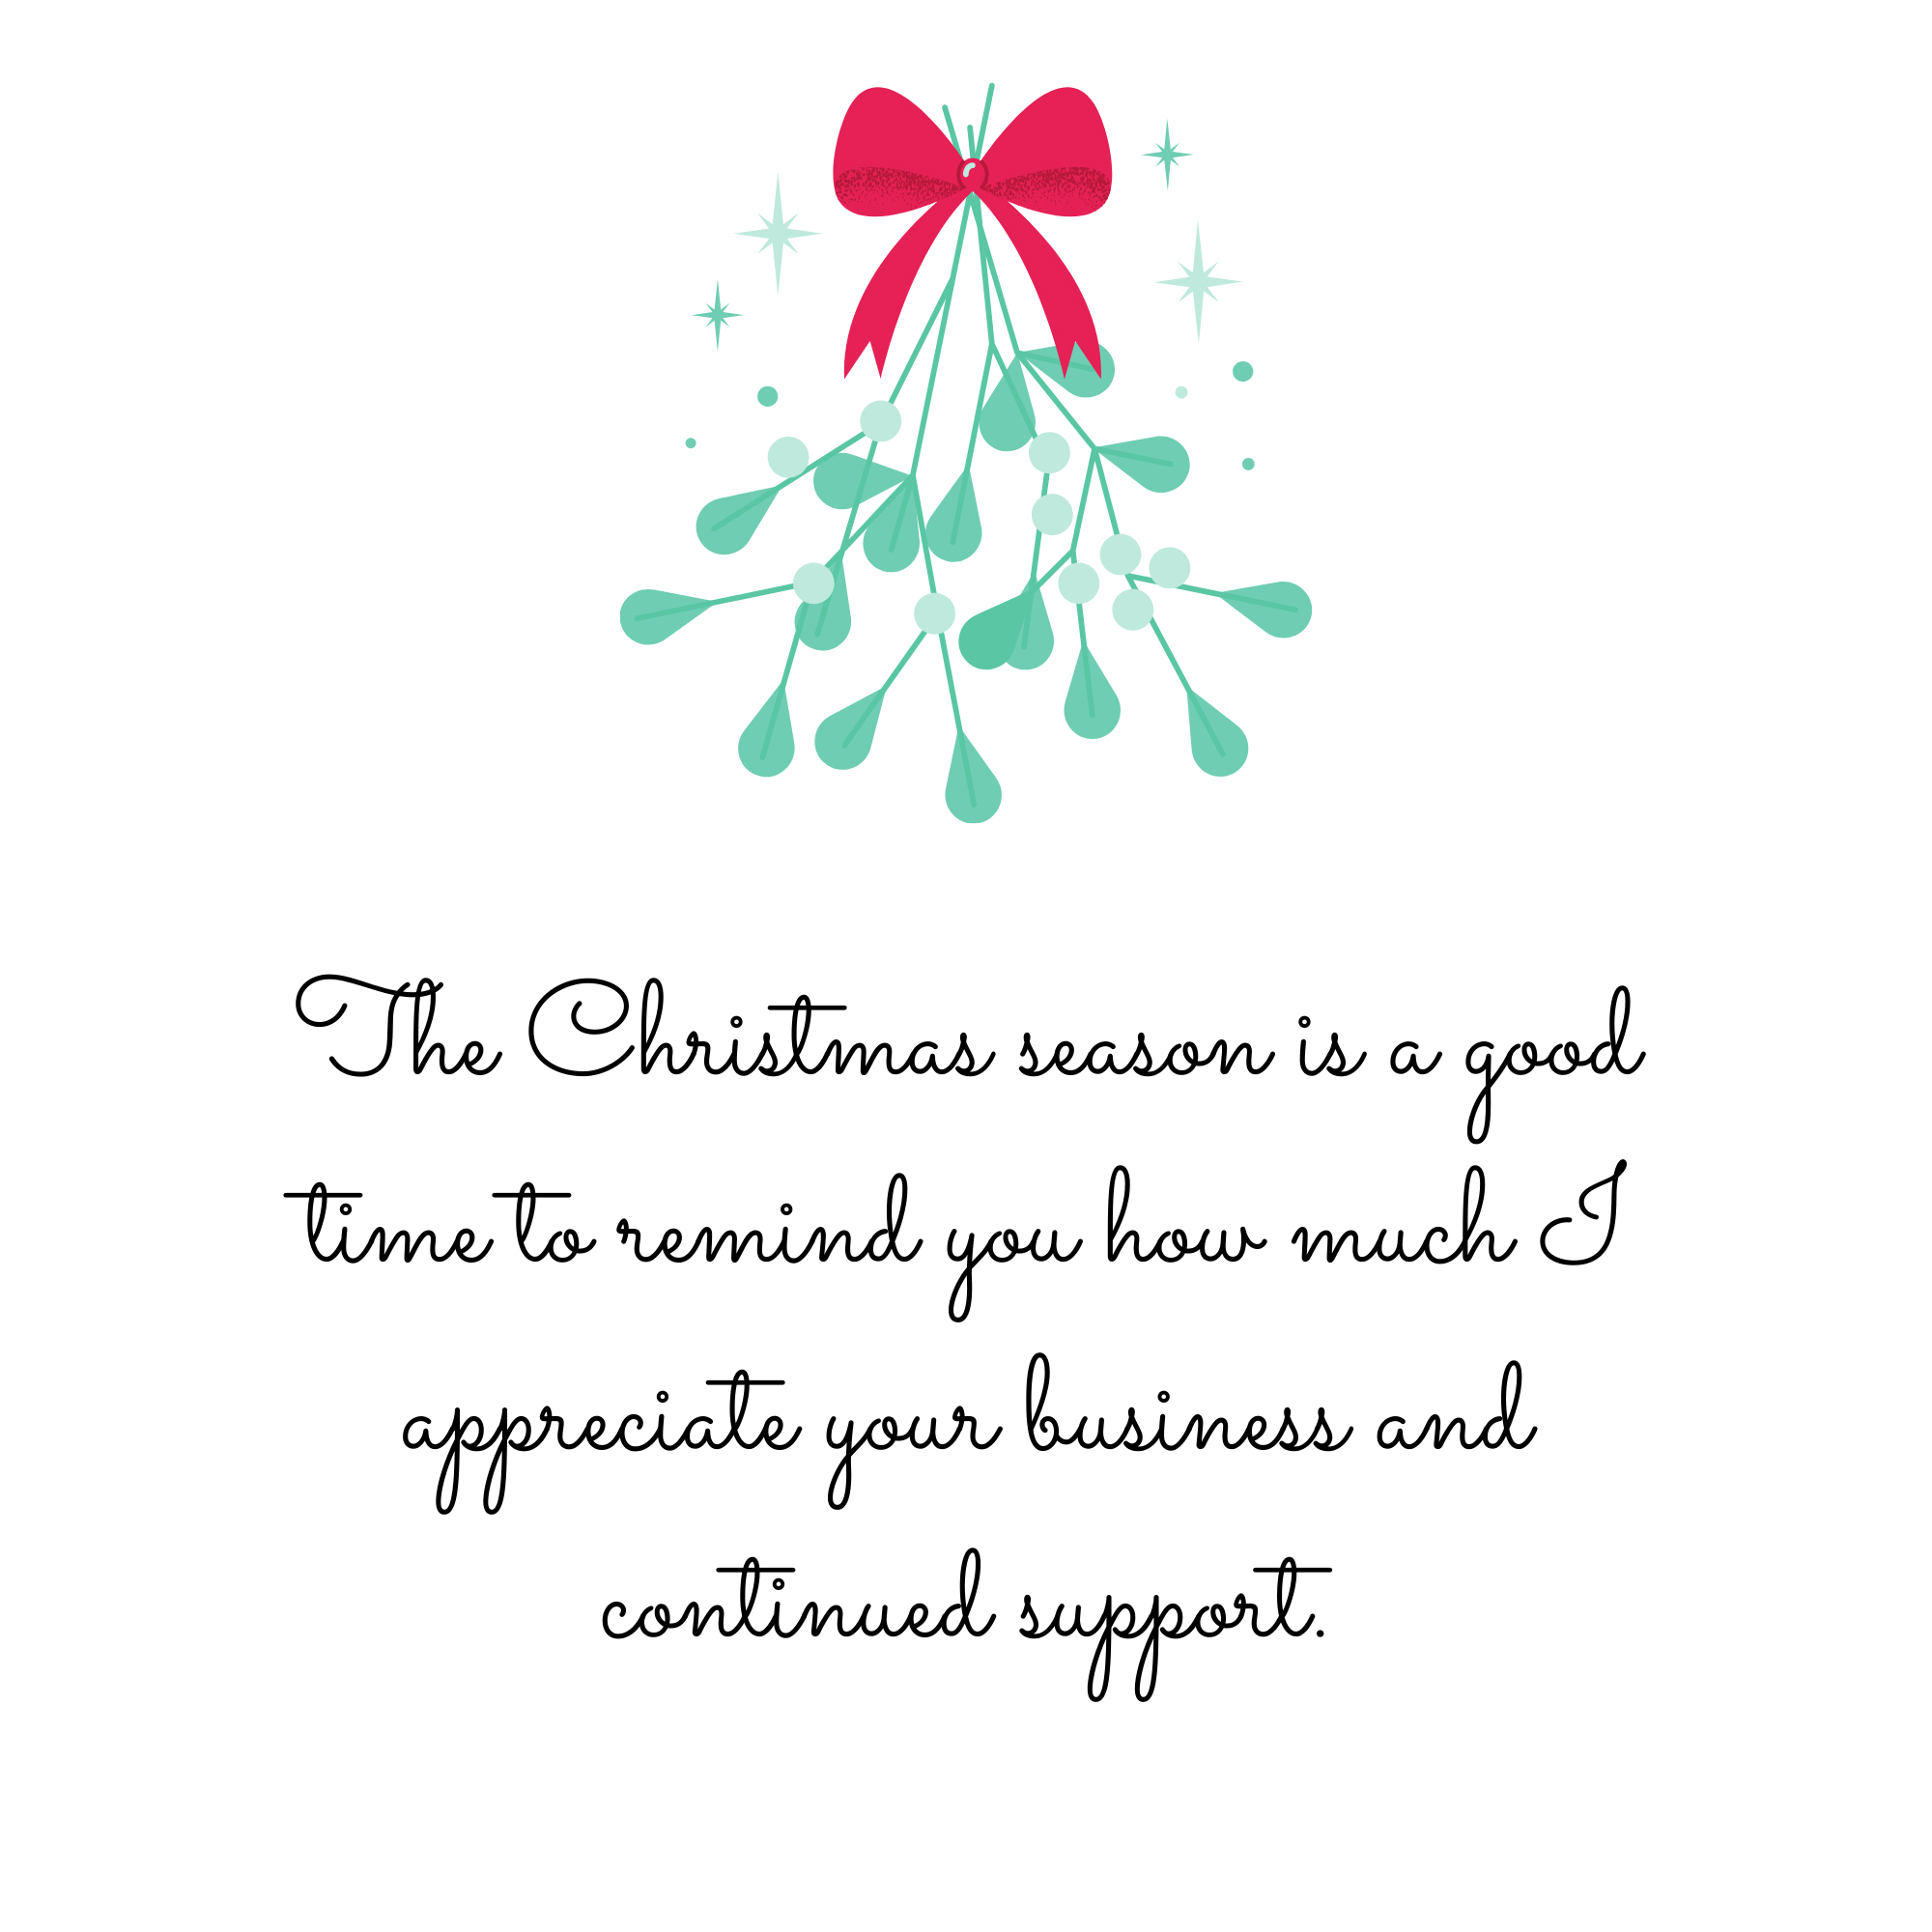 The Christmas season is a good time to remind you how much I appreciate your business and continued support.